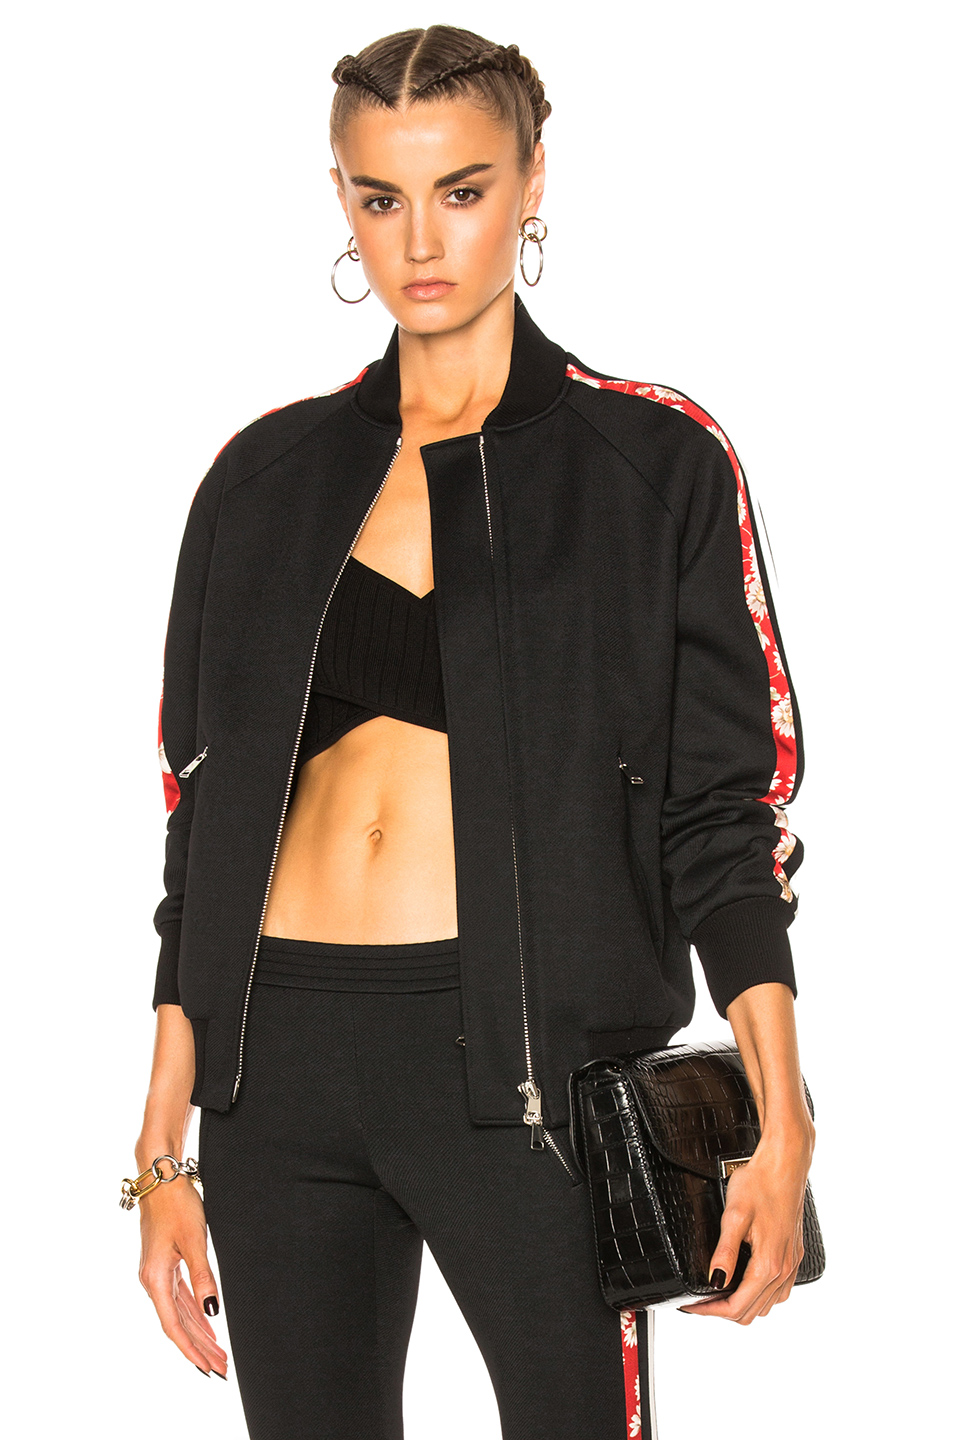 Alexander McQueen Track Bomber in Black,Floral